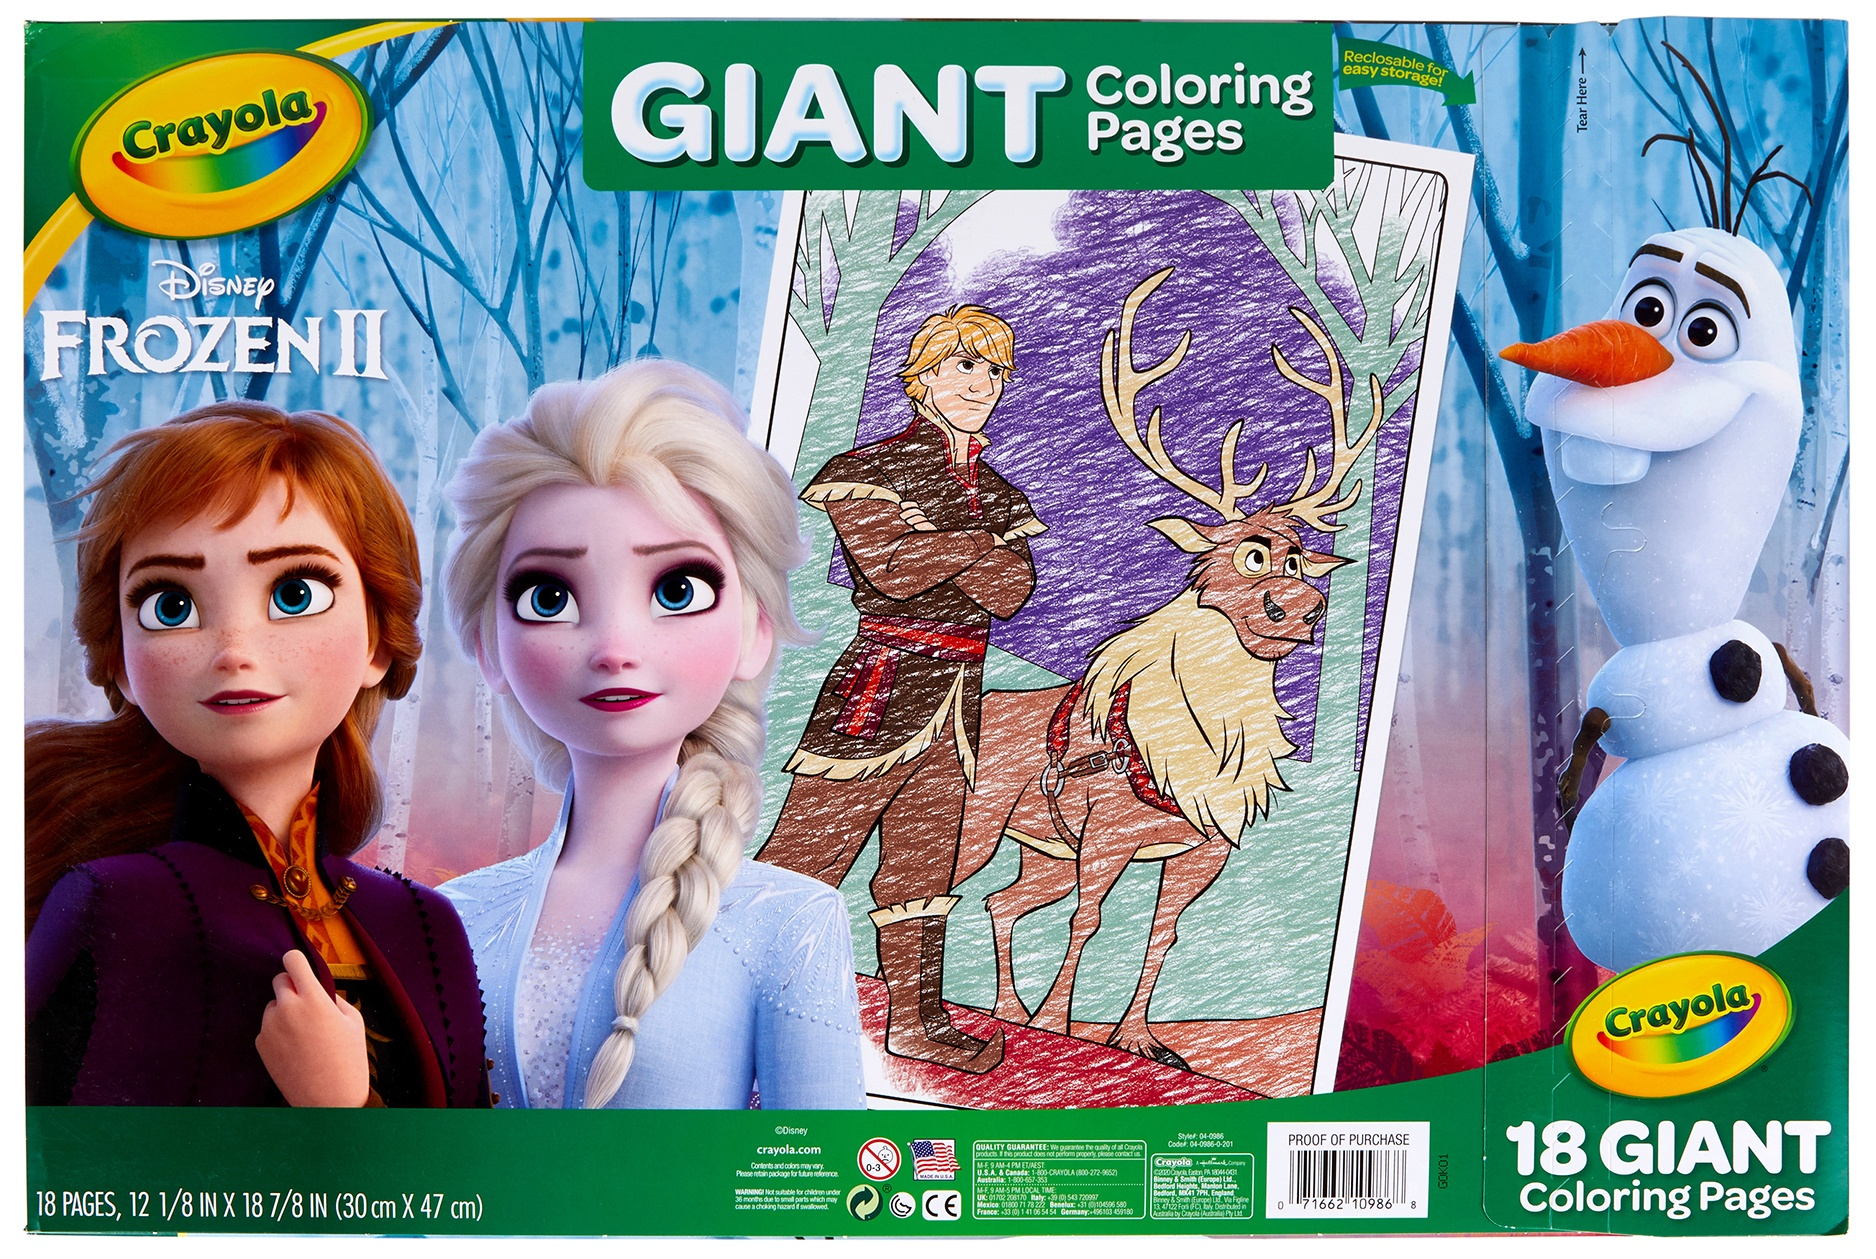 Crayola Giant Coloring Pages 12.75X19.5 -Frozen 2